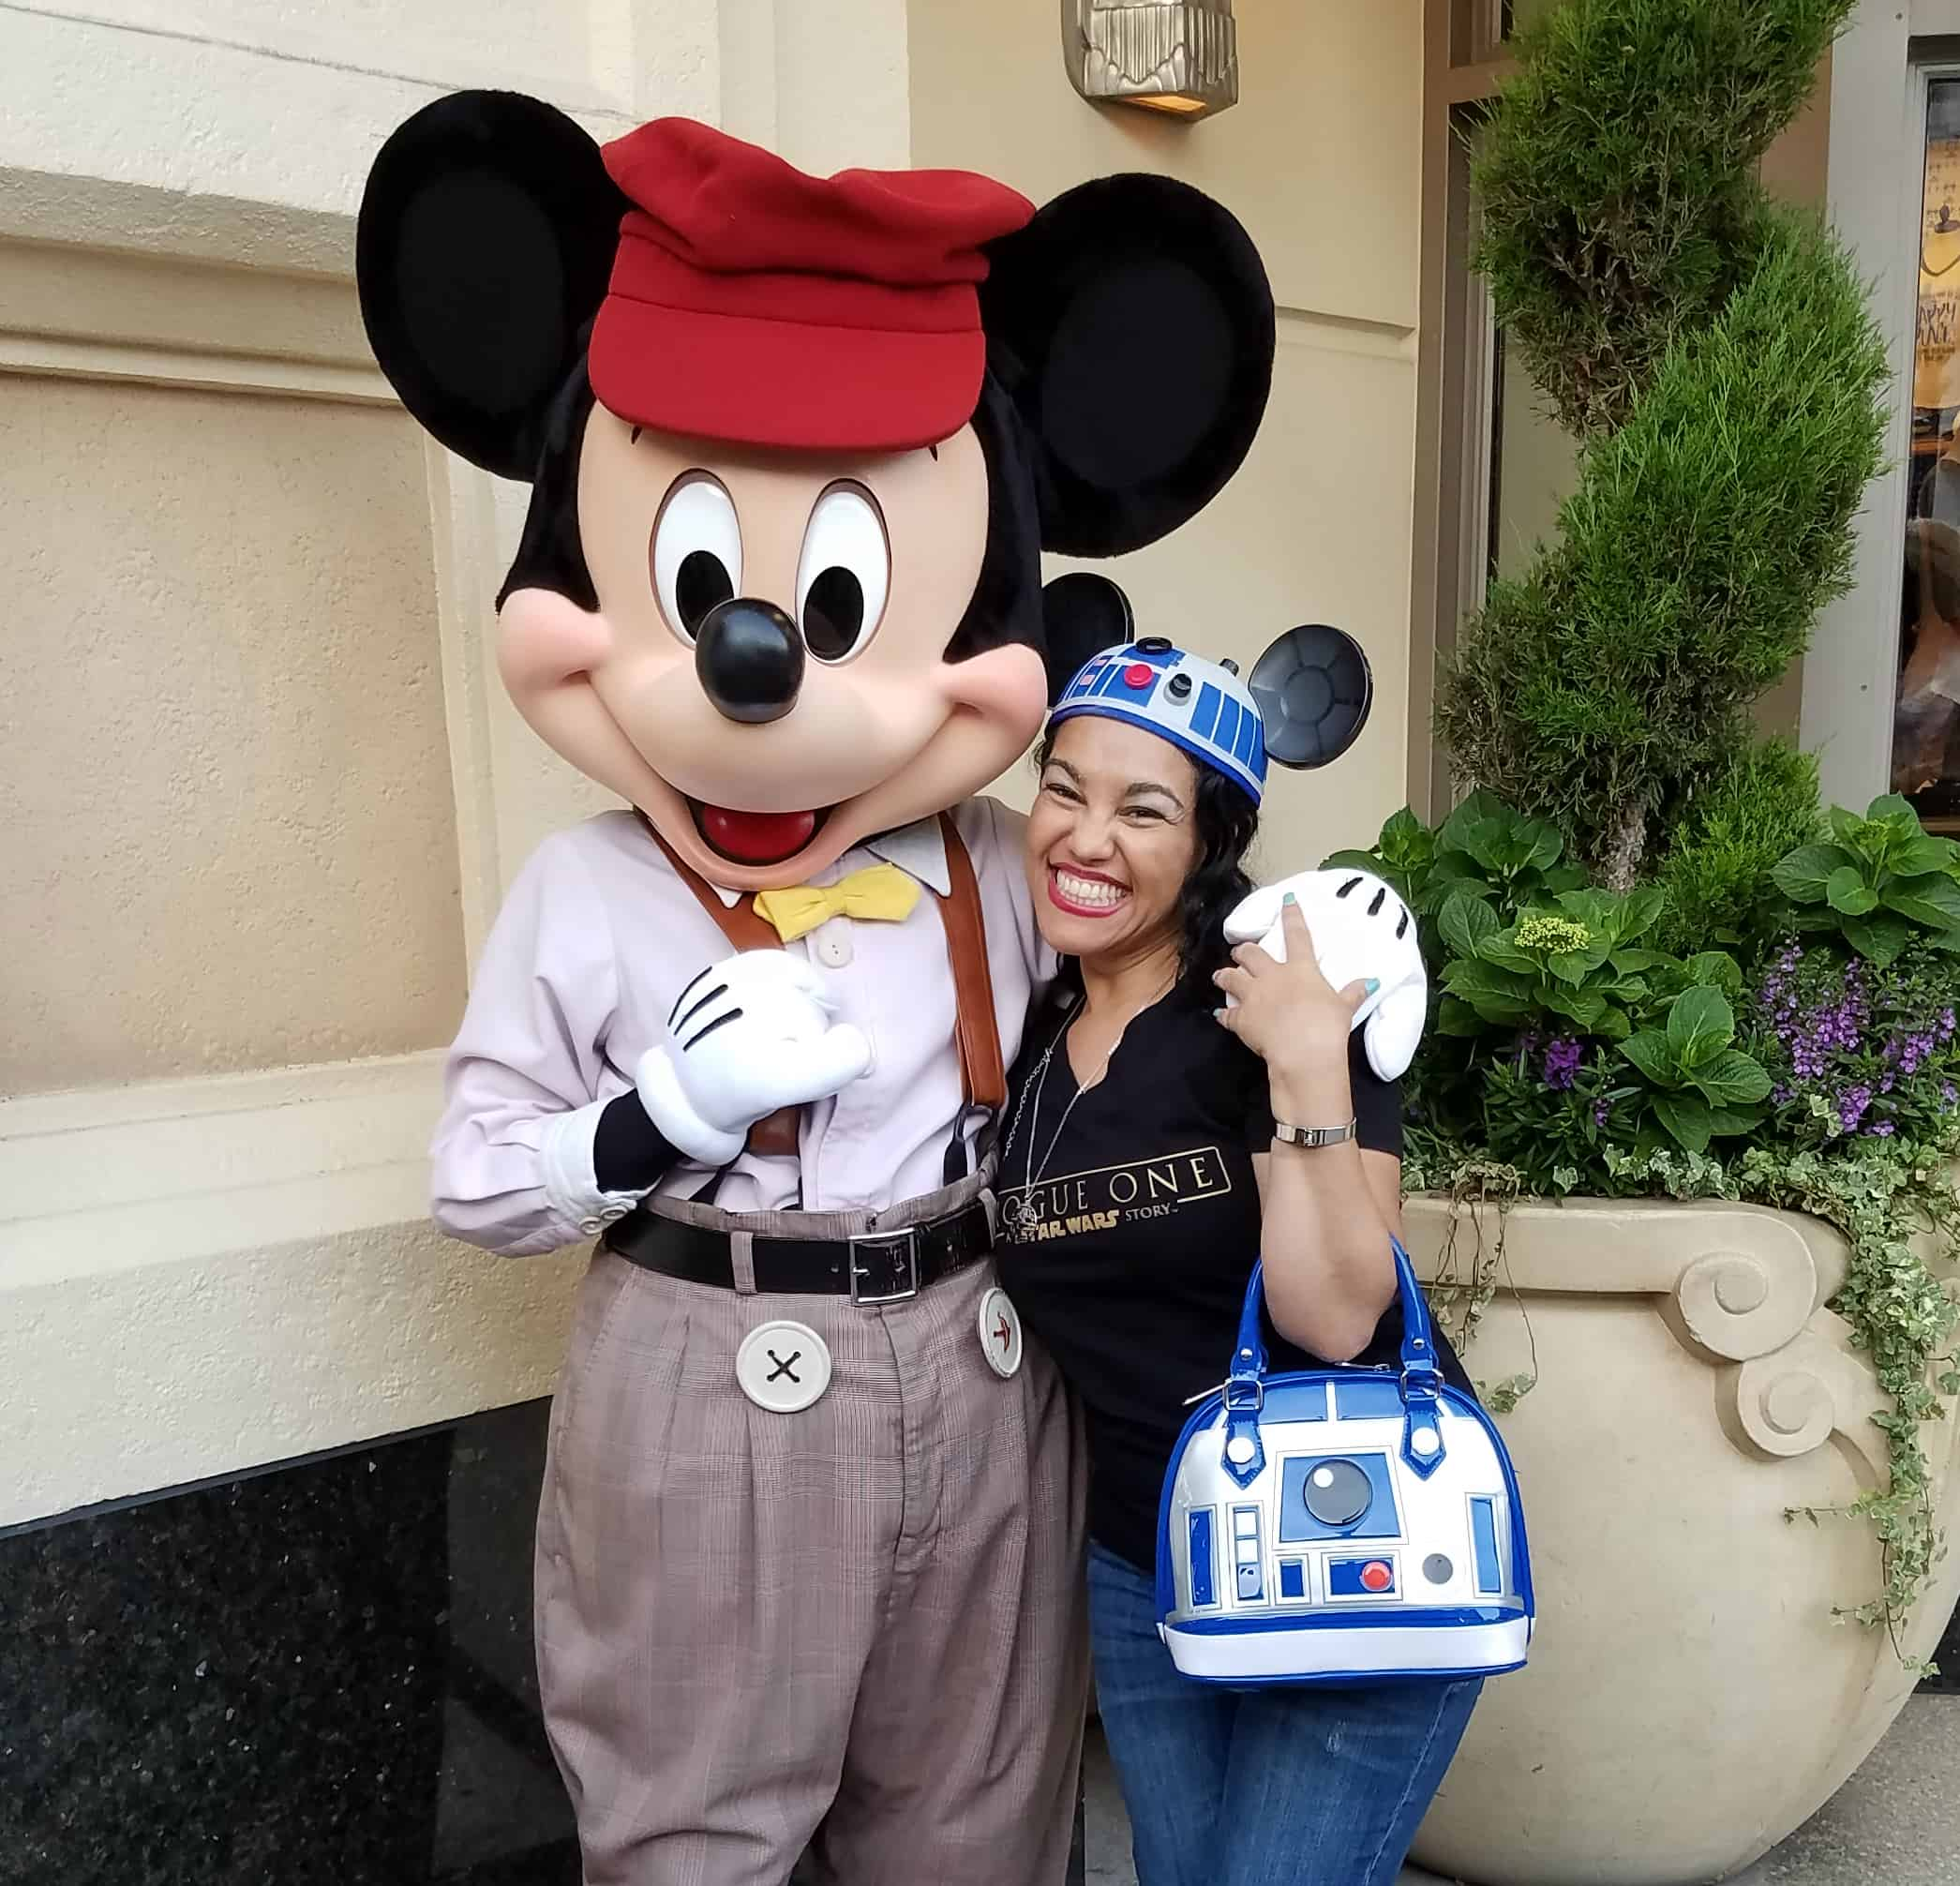 While at D23 Expo - Disneyland and Disney California Adventure - Mickey Mouse and Elayna Fernandez